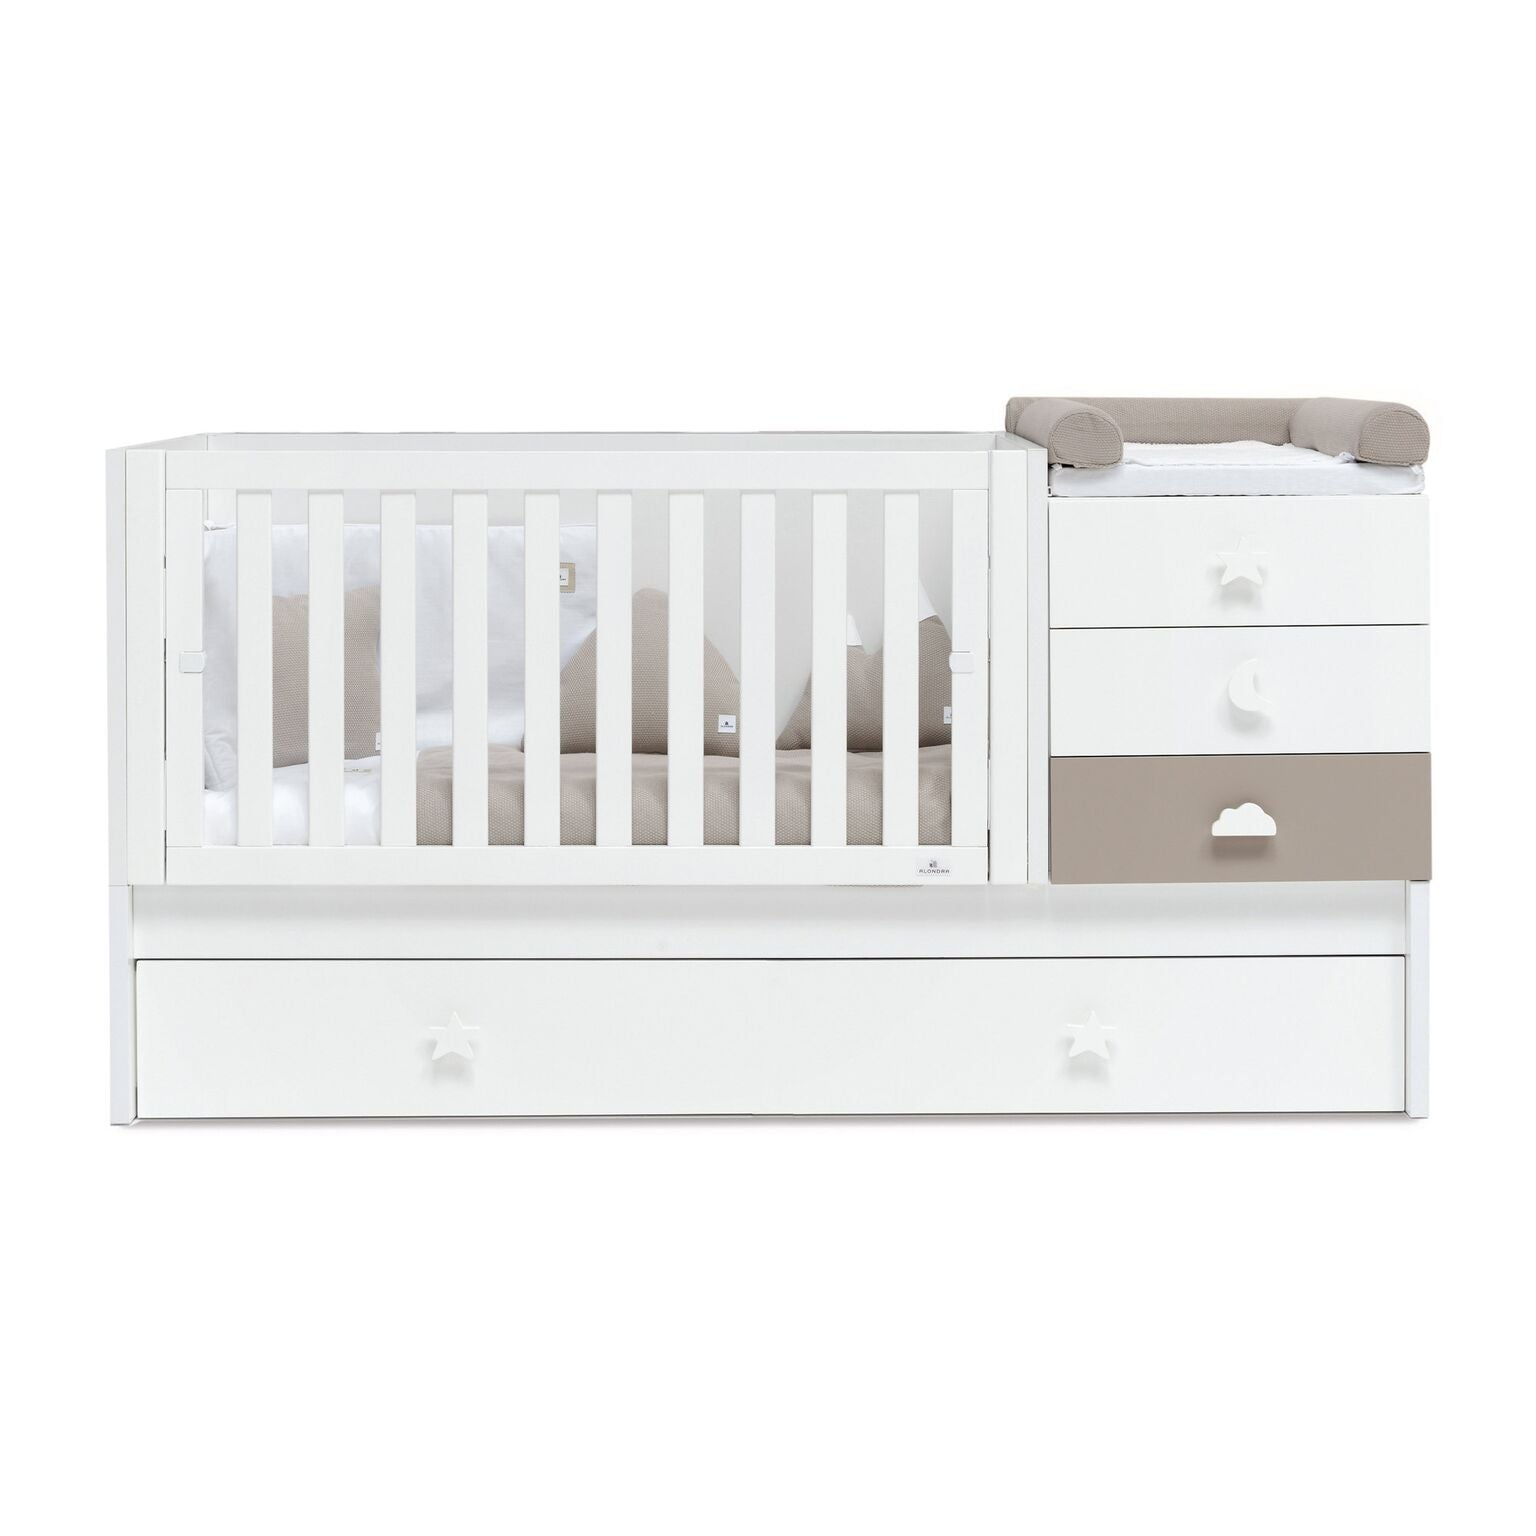 Alondra Convertible Crib Zero Bubble - Arena